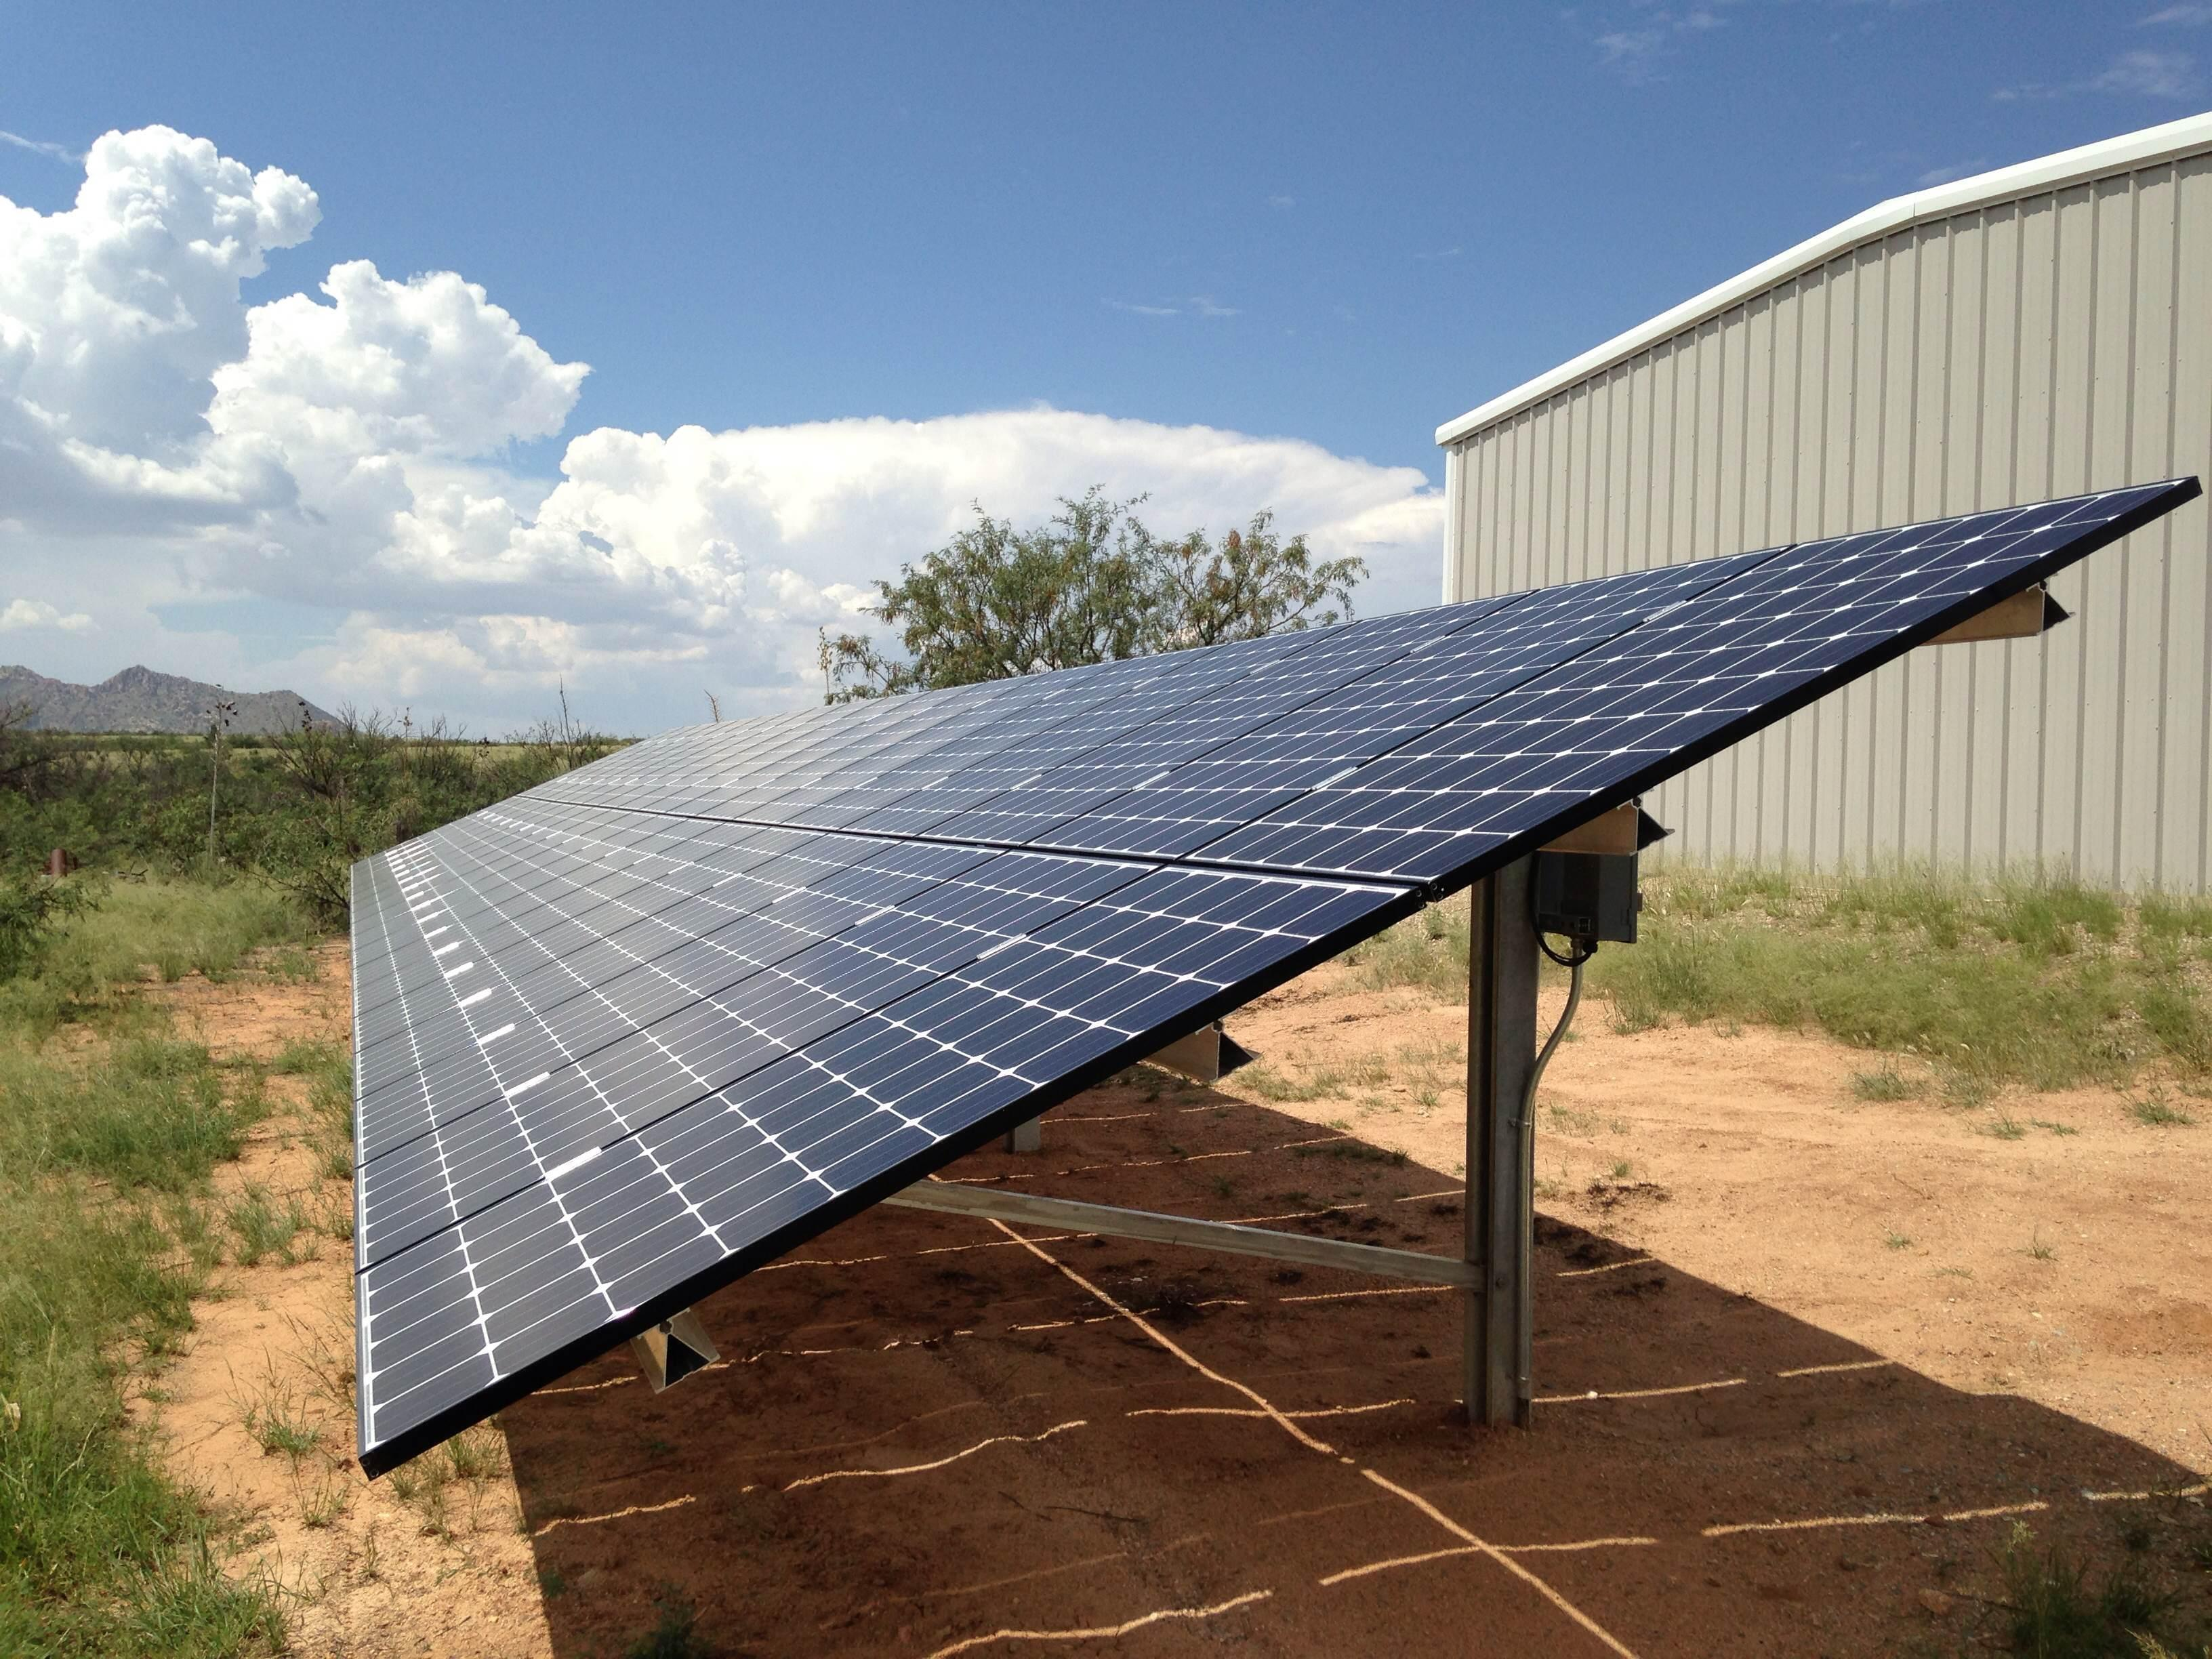 Ground Mount solar system in Dragoon Arizona